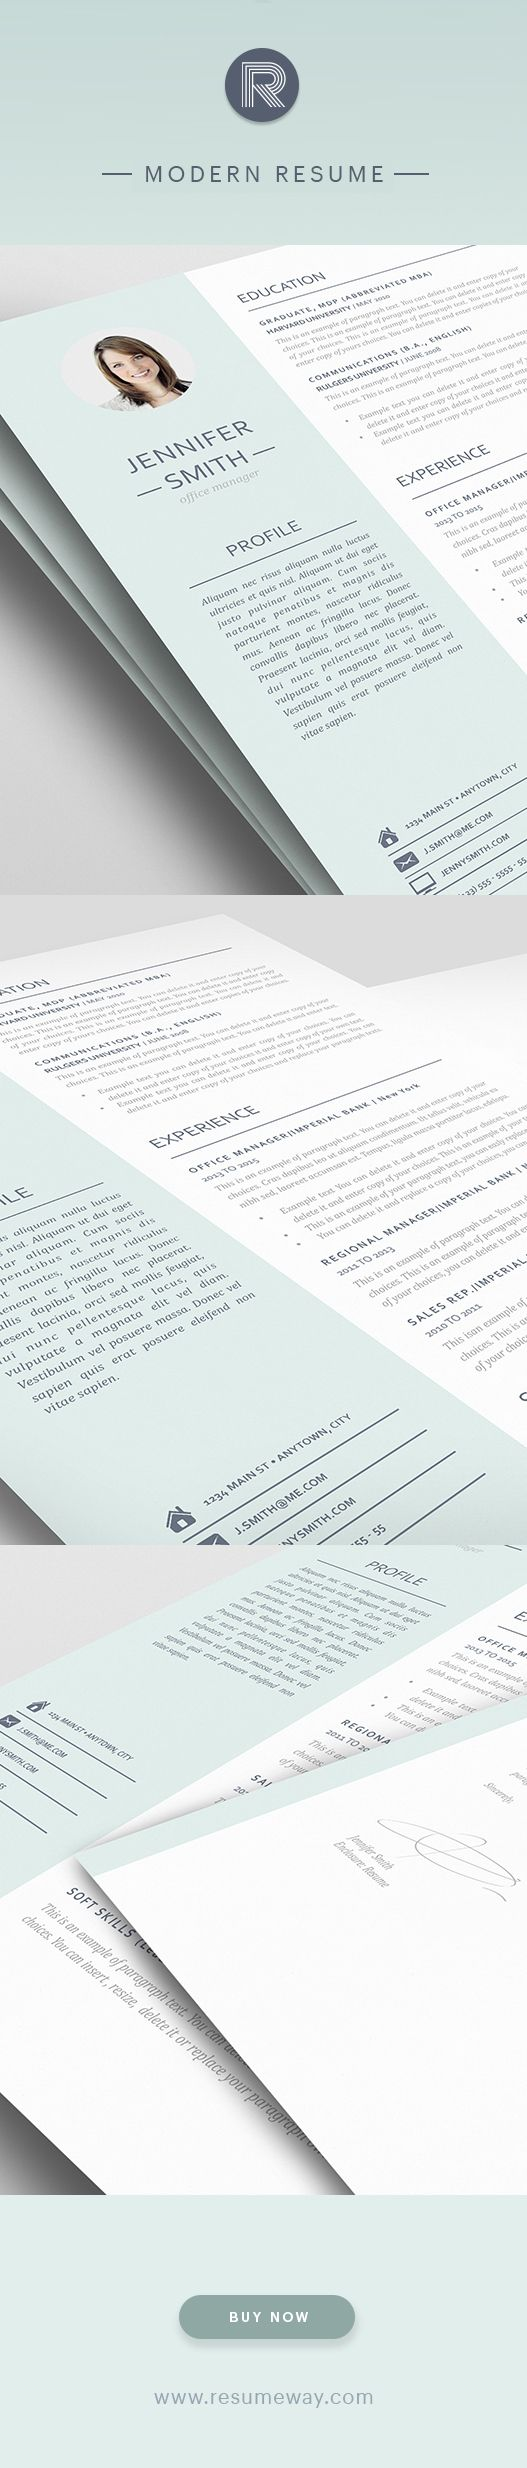 17 best images about modern resume templates modern resume template 110980 premium line of resume cover letter templates easy edit